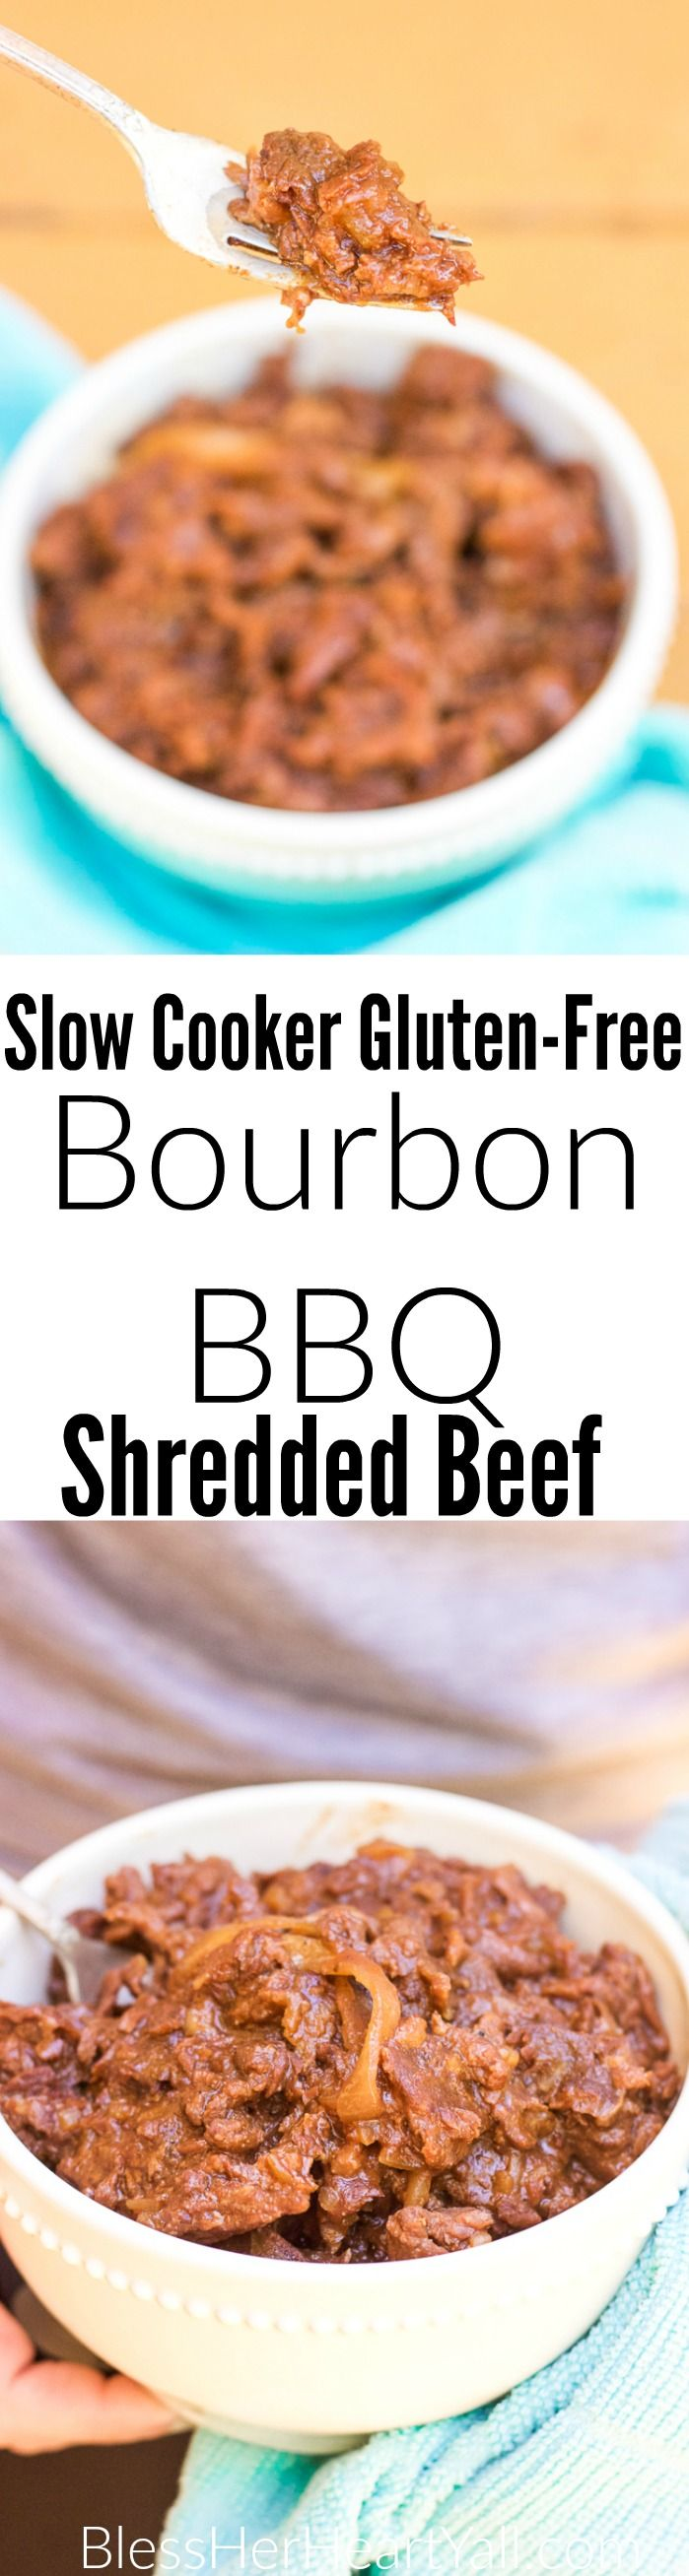 This gluten-free bourbon bbq shredded beef recipe is a magical combination of juicy beef in a garlic and onion barbecue sauce, placed in your slow cooker along with a dash of bourbon, and ready for your enjoyment after a busy day!